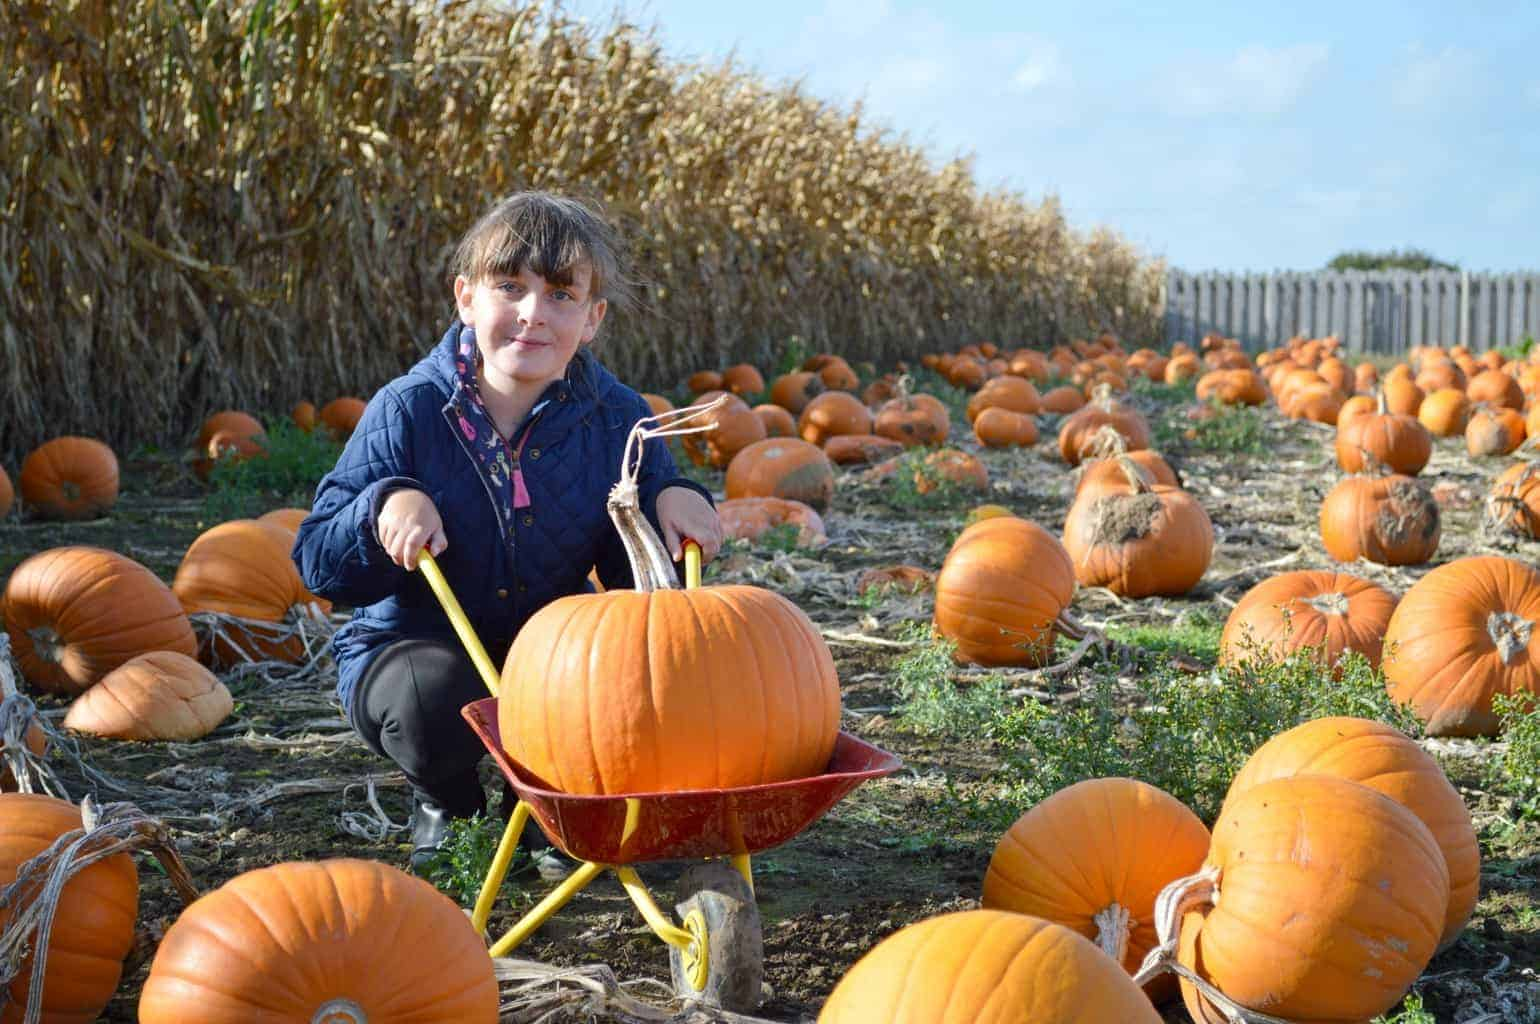 A Postcard From… Hirsty's Family Fun Park Pumpkin Patch